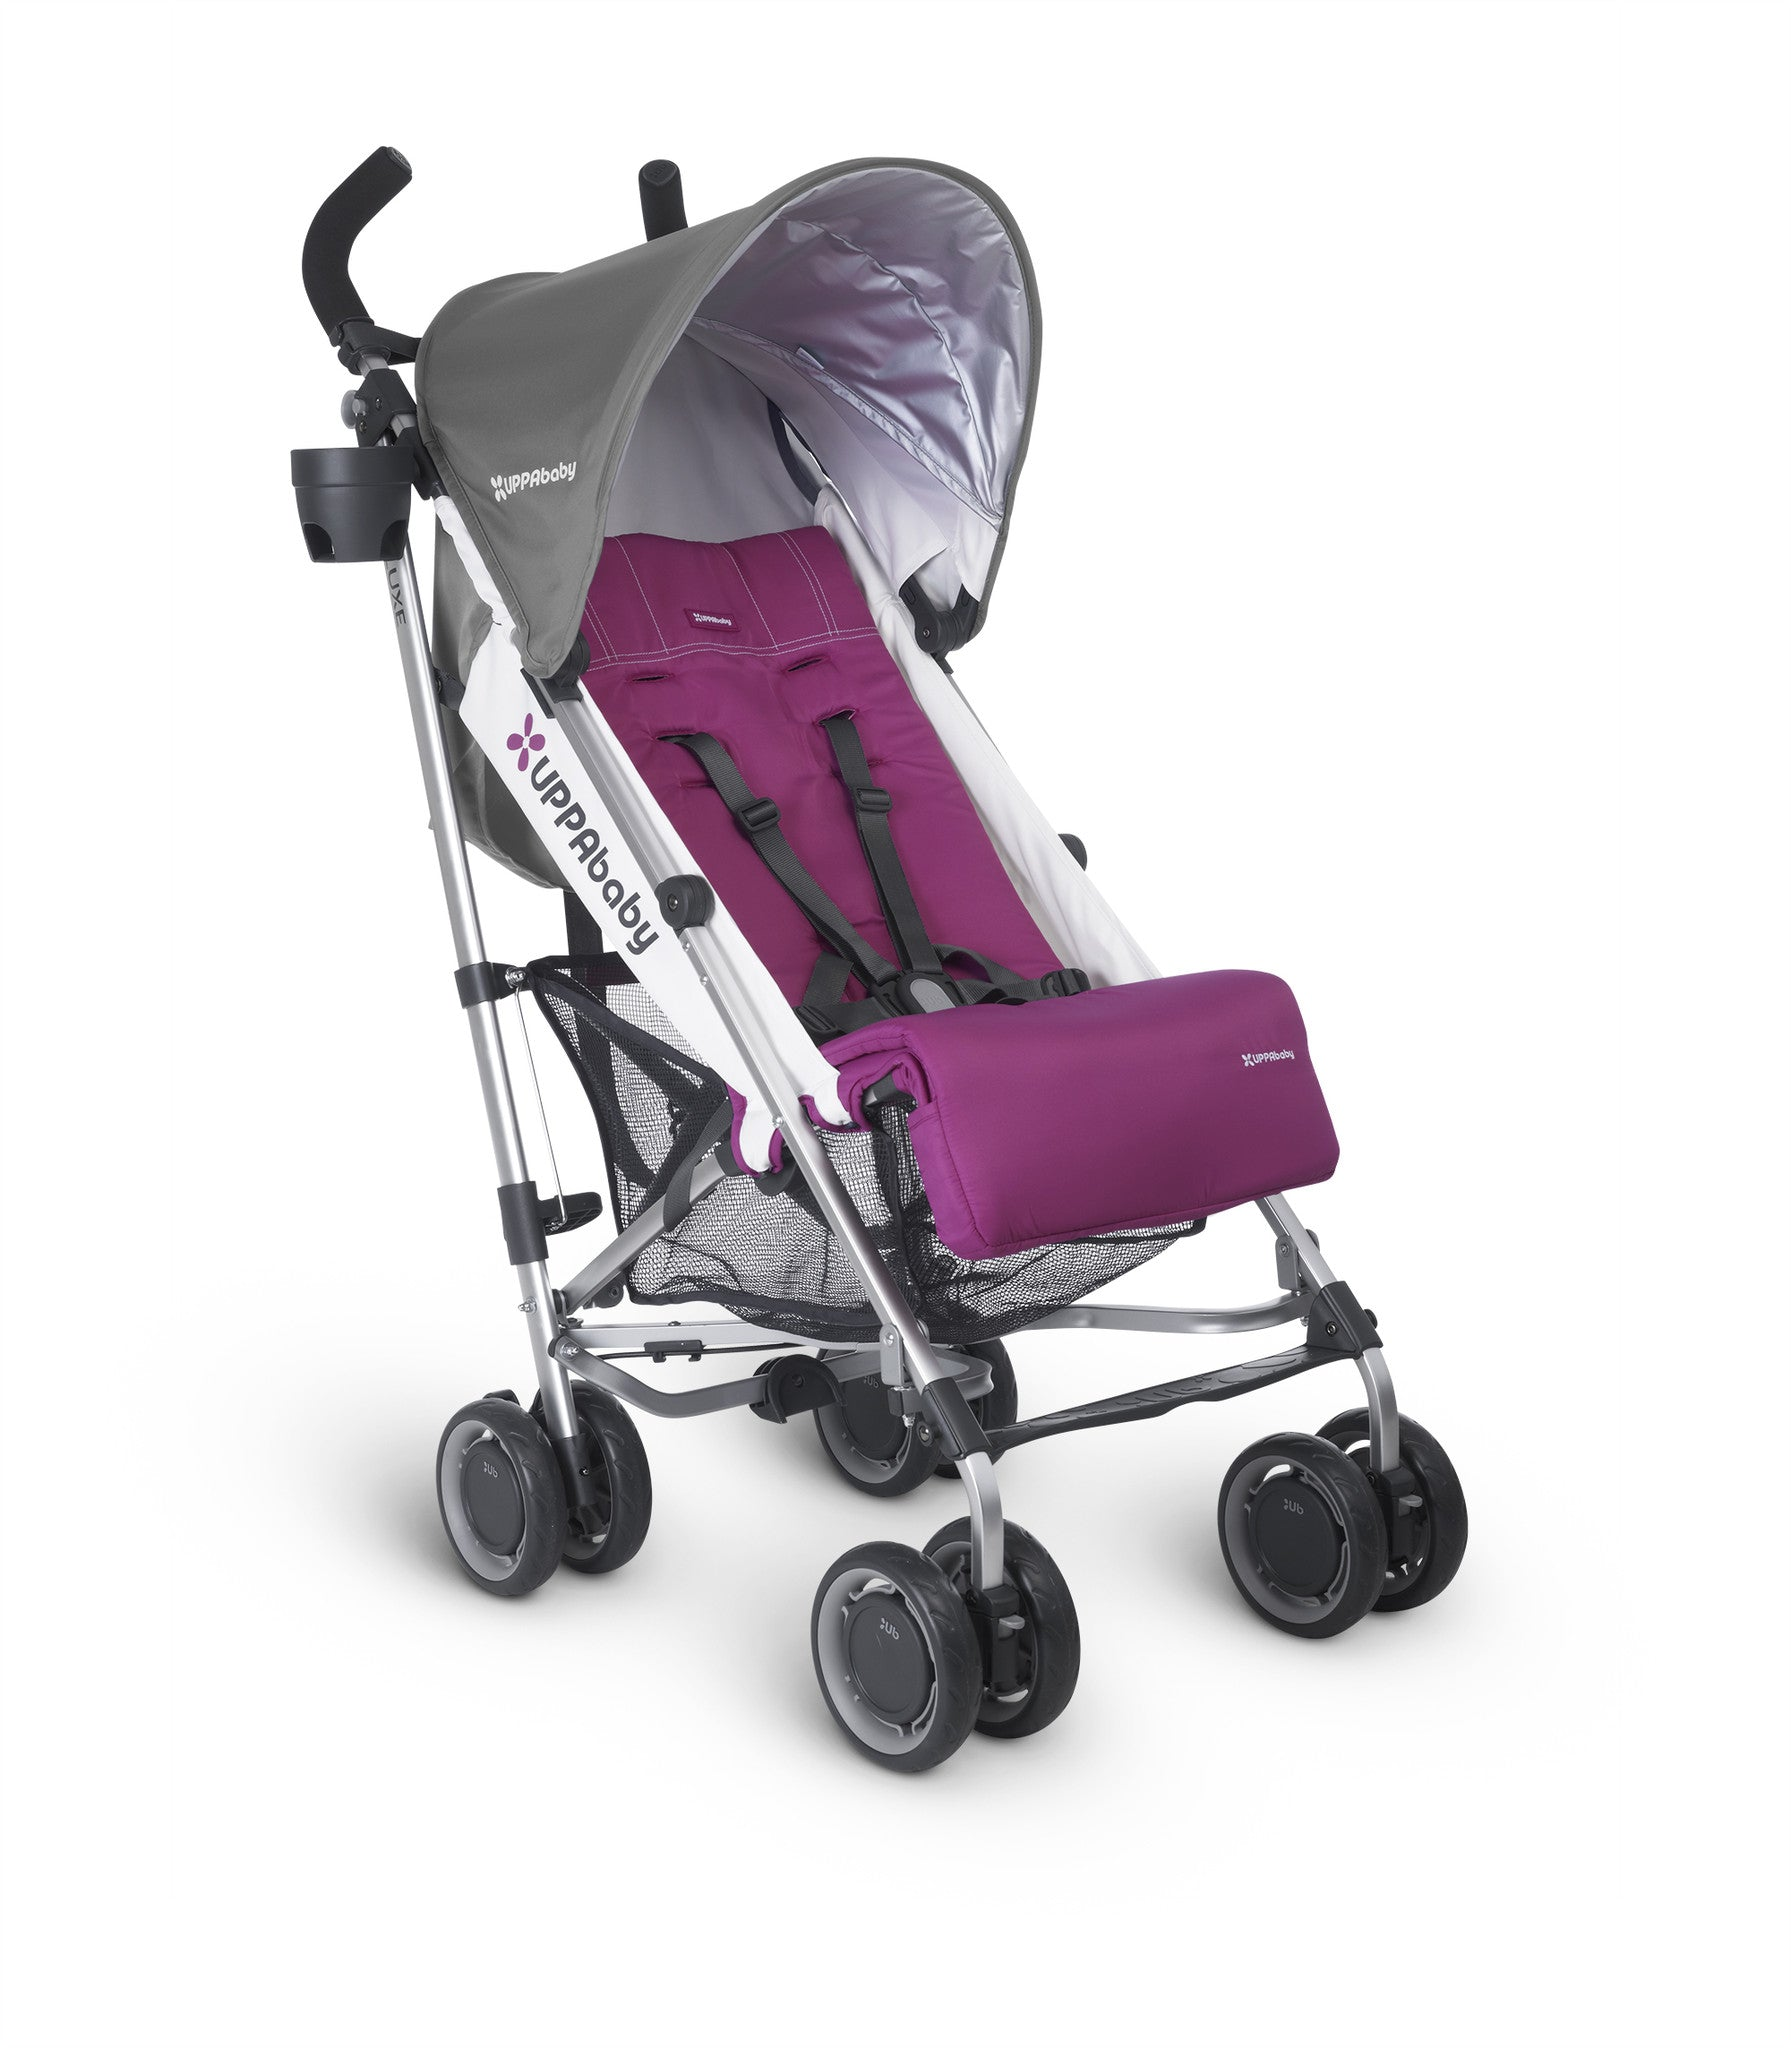 UPPABaby G Luxe Stroller